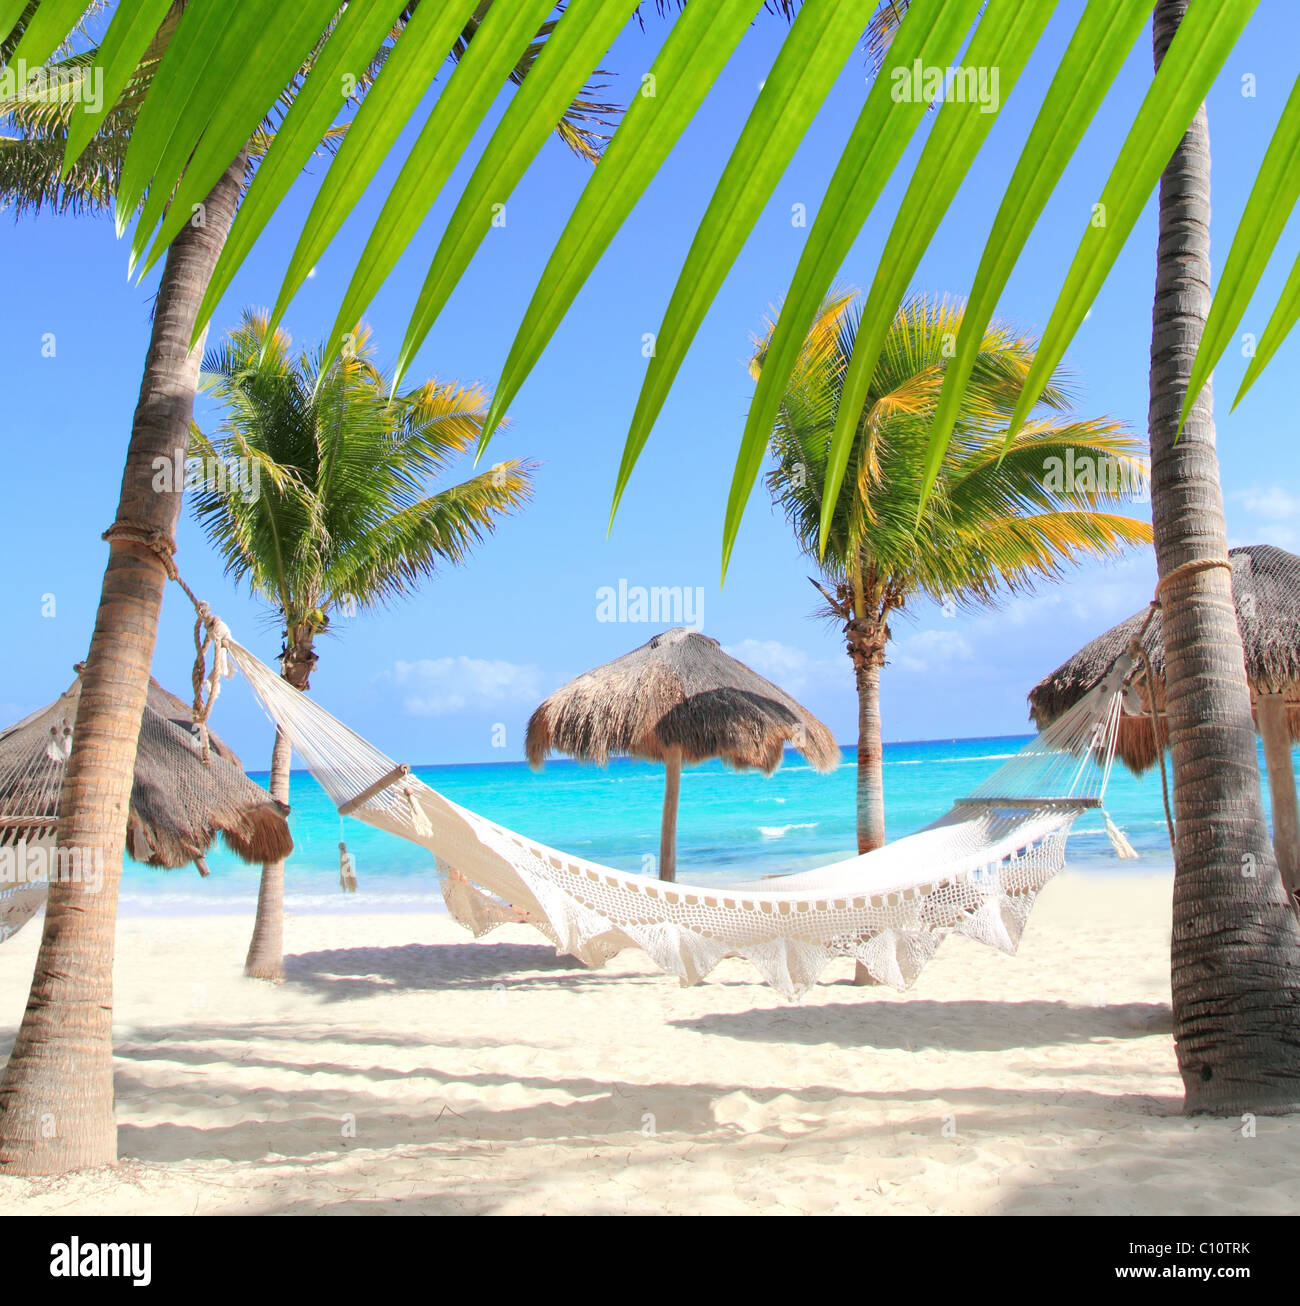 caribbean beach hammock and palm trees in mayan riviera mexico caribbean beach hammock and palm trees in mayan riviera mexico      rh   alamy